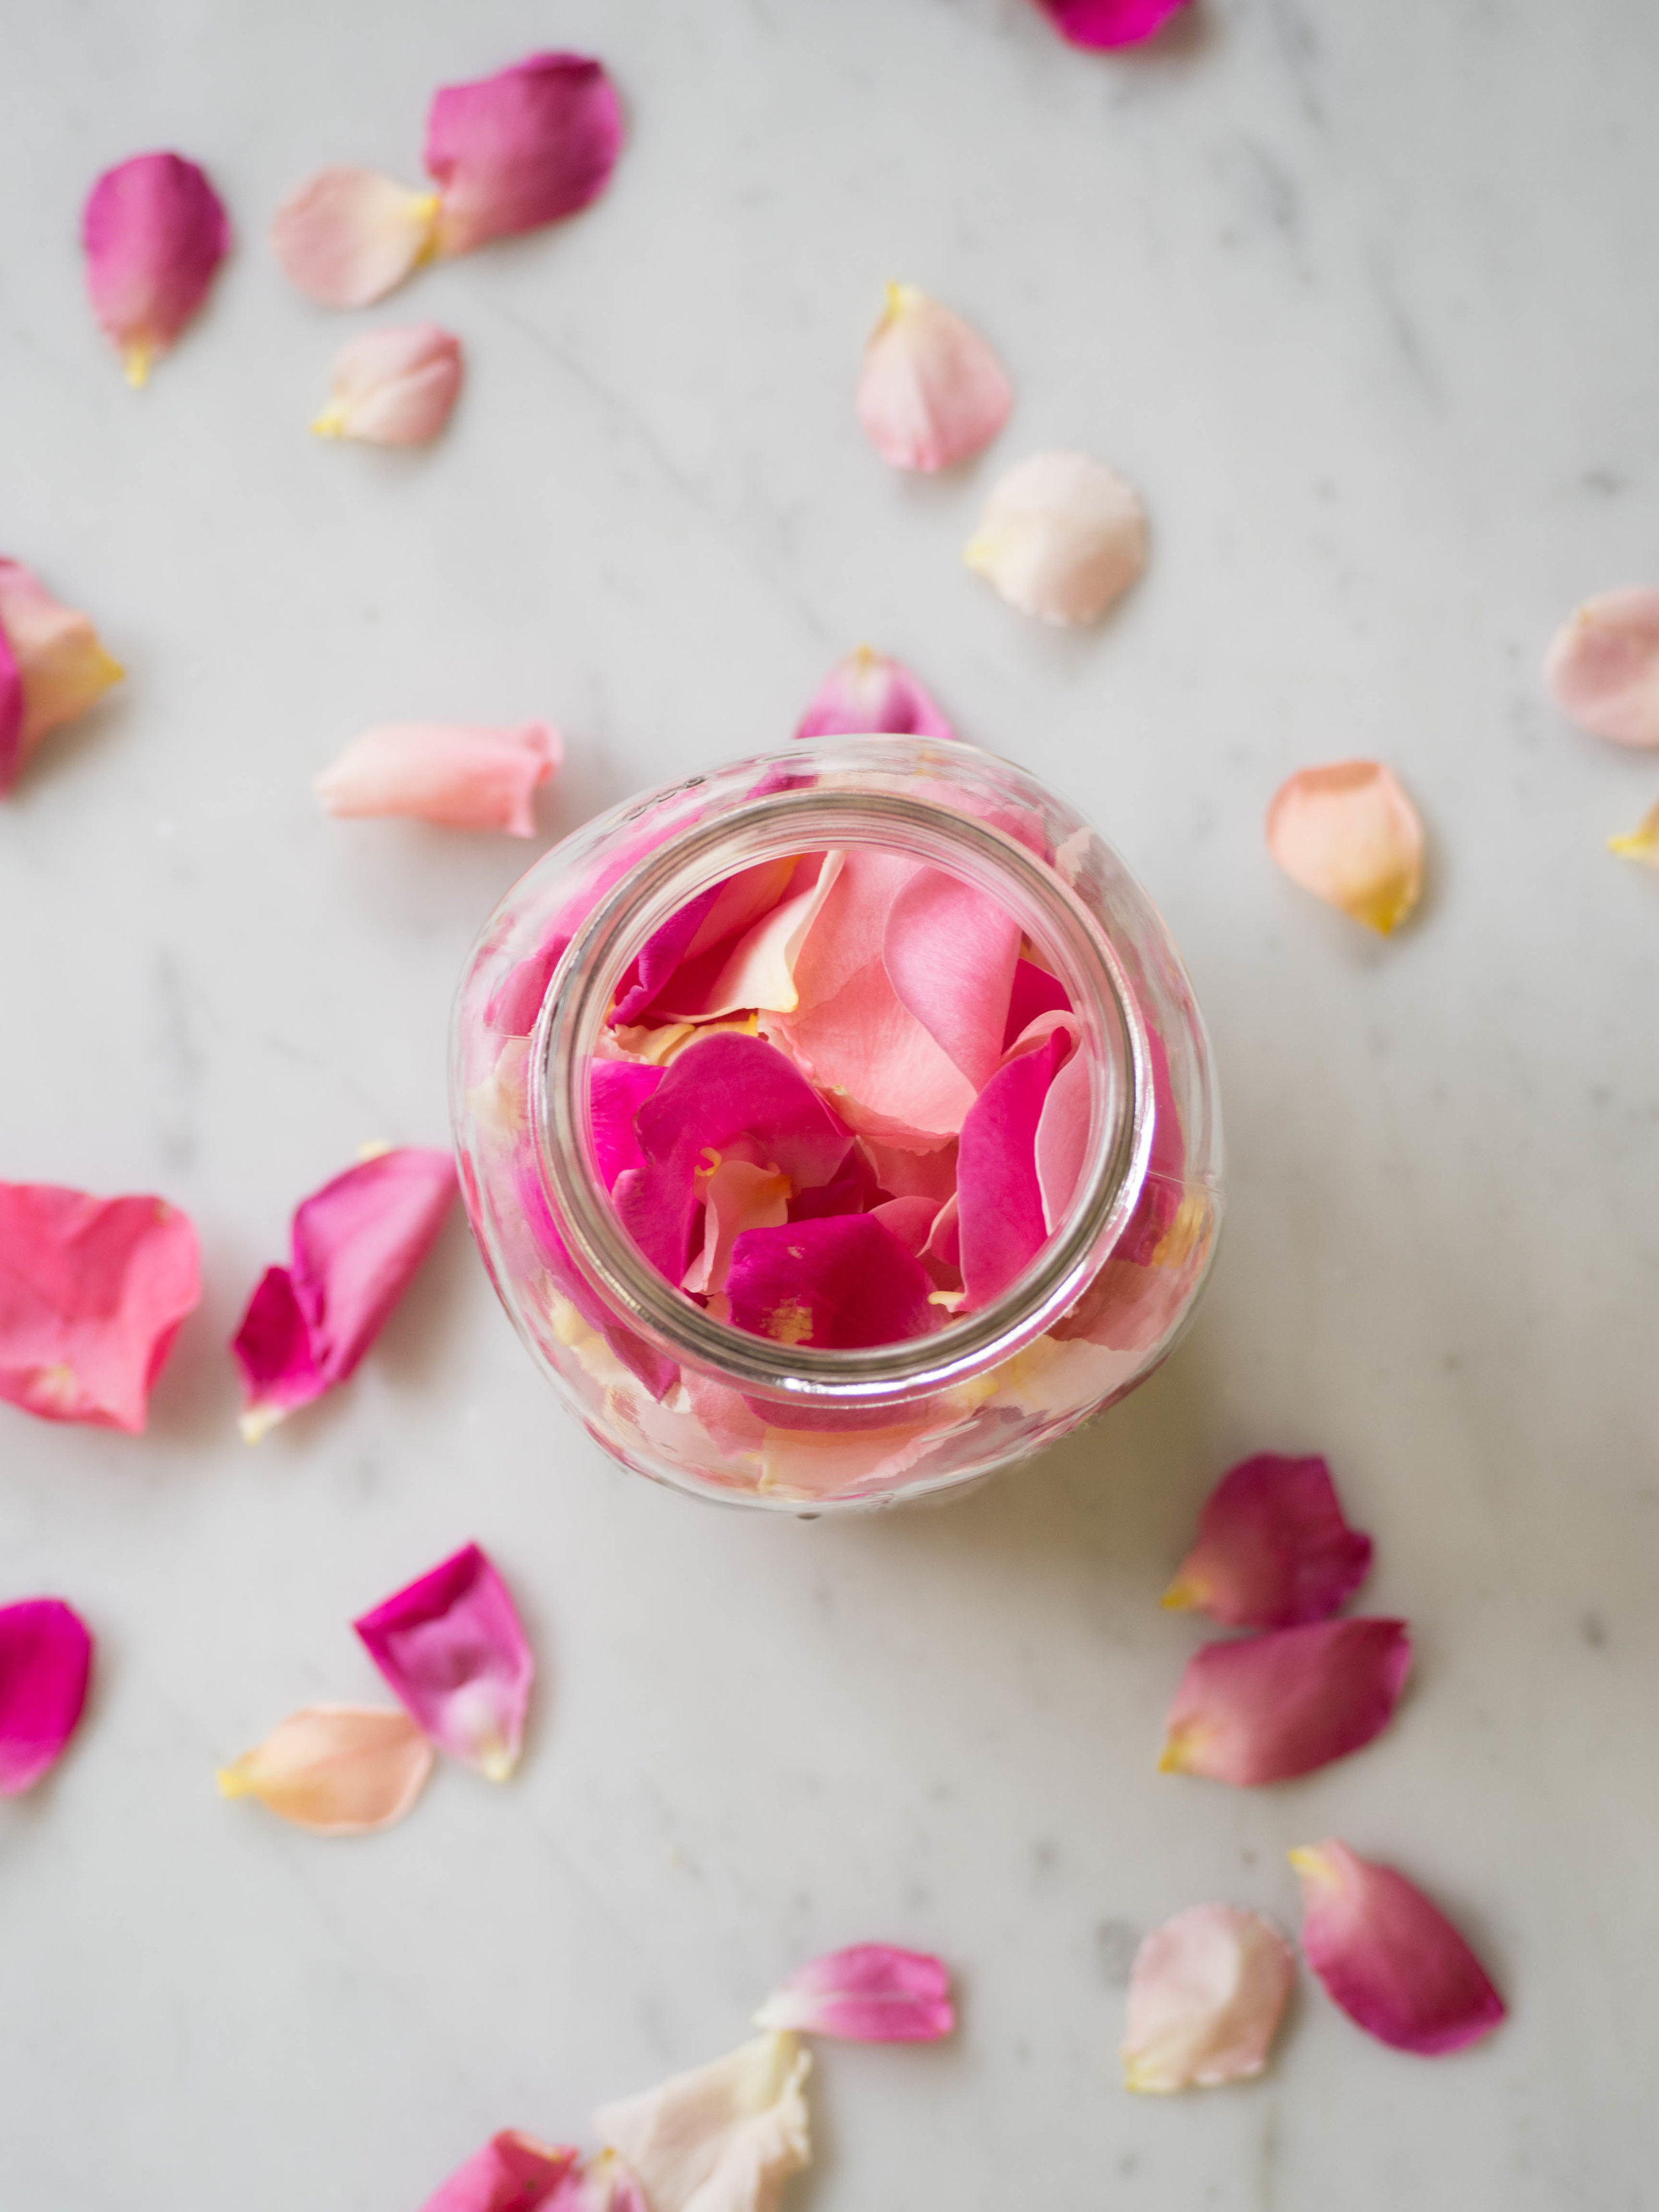 Tips for Baking with Rose Petals